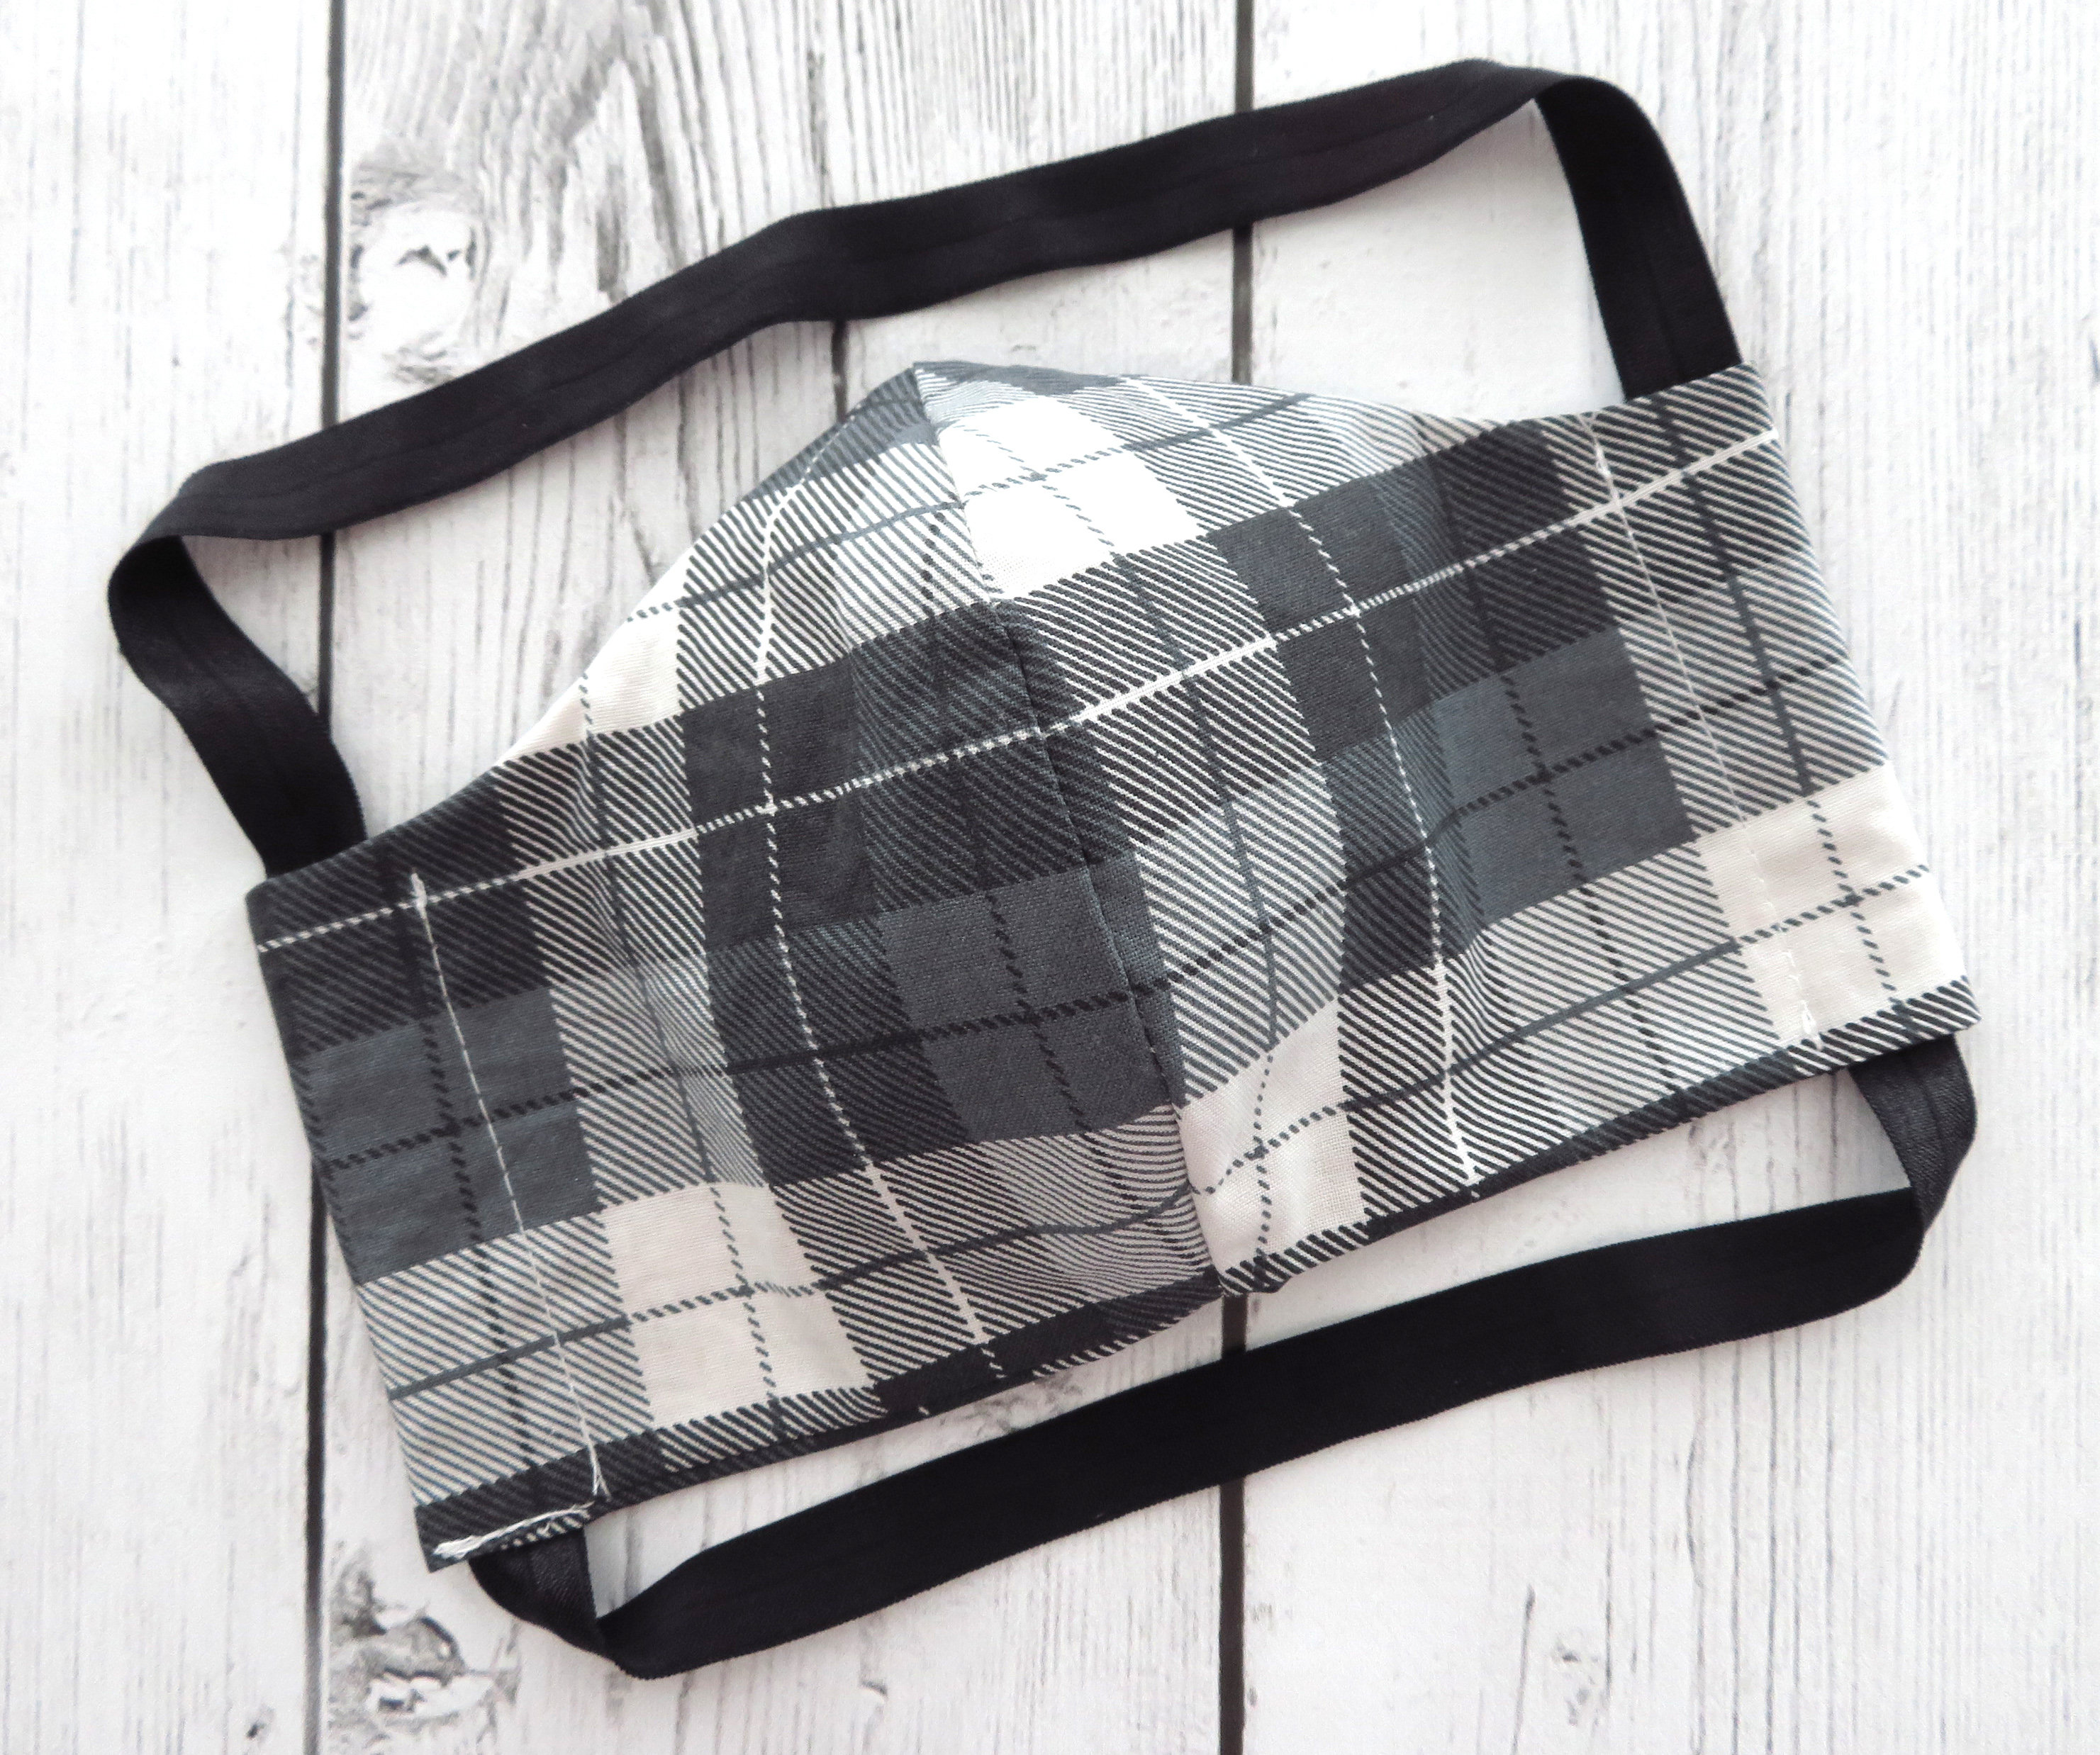 Men's Face Mask in Black and Grey Plaid -READY TO SHIP! -handmade cotton face mask, comfortable mask, washable and re-usable, made in usa